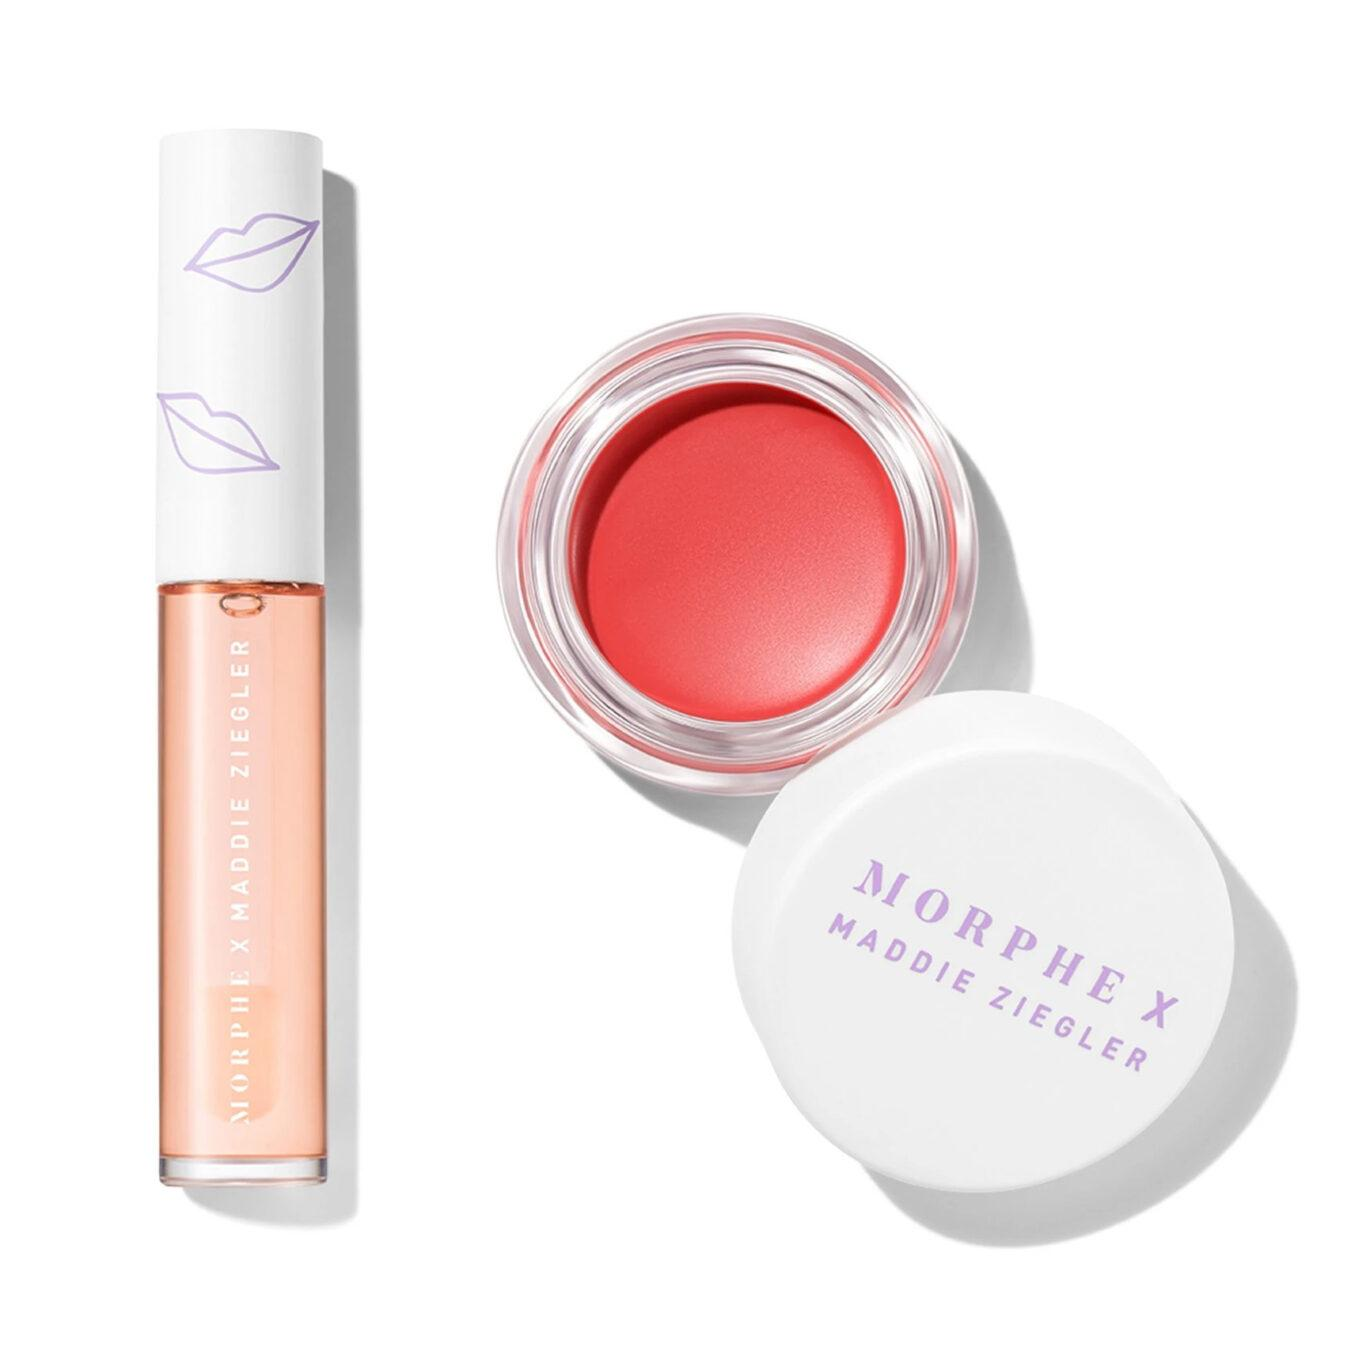 Coleccion The Imagination De Morphe X Maddie Ziegler Belleza Para Todos Browse 3,252 maddie ziegler stock photos and images available, or start a new search to explore more stock. morphe x maddie ziegler